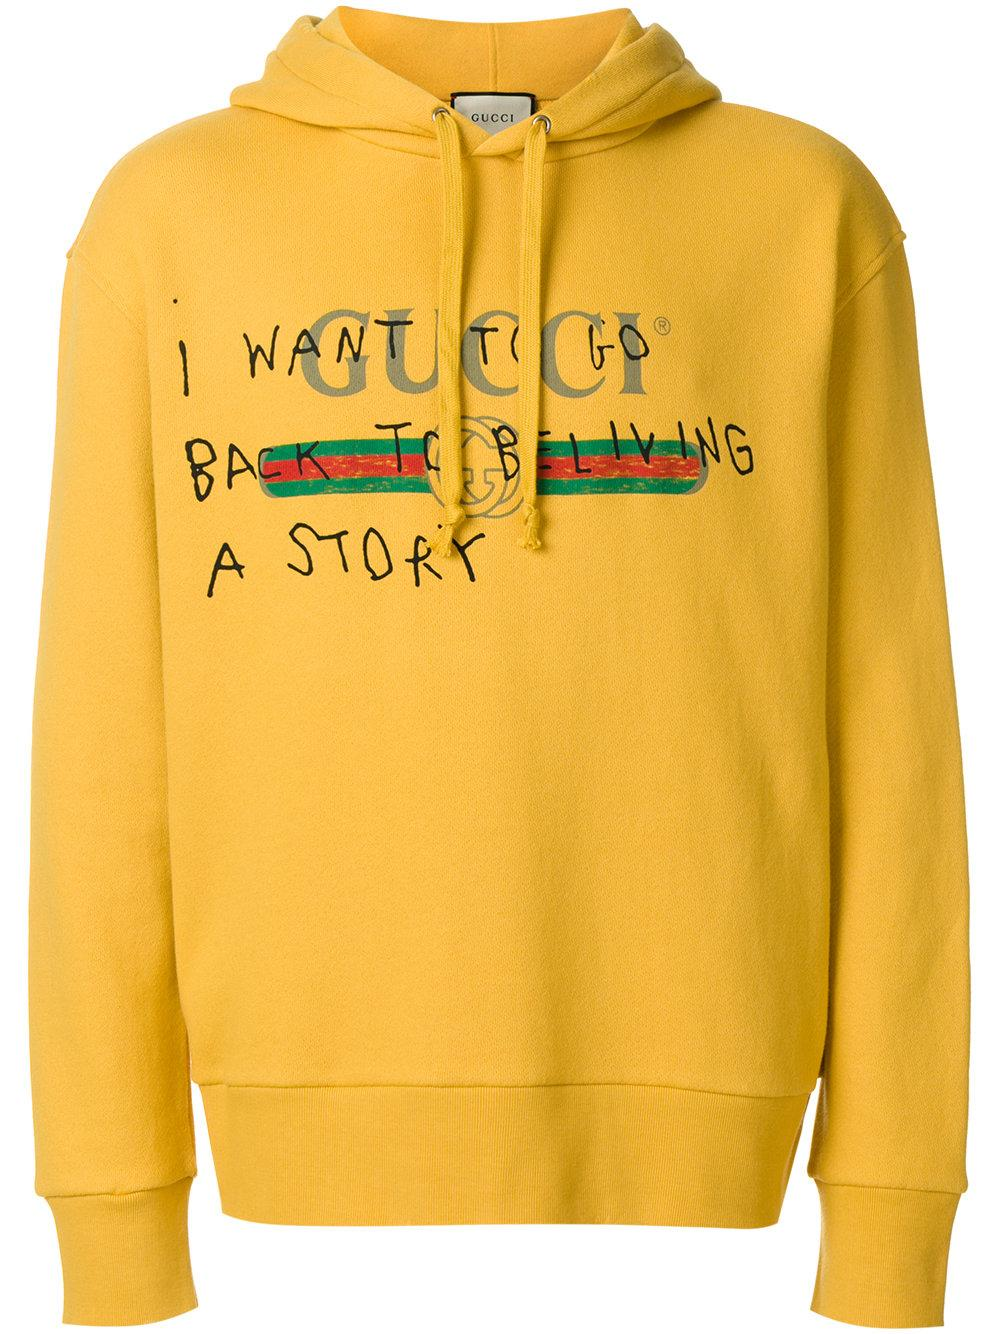 48bad5c26 Gucci Coco Capitán Logo Hoodie in Yellow for Men - Lyst